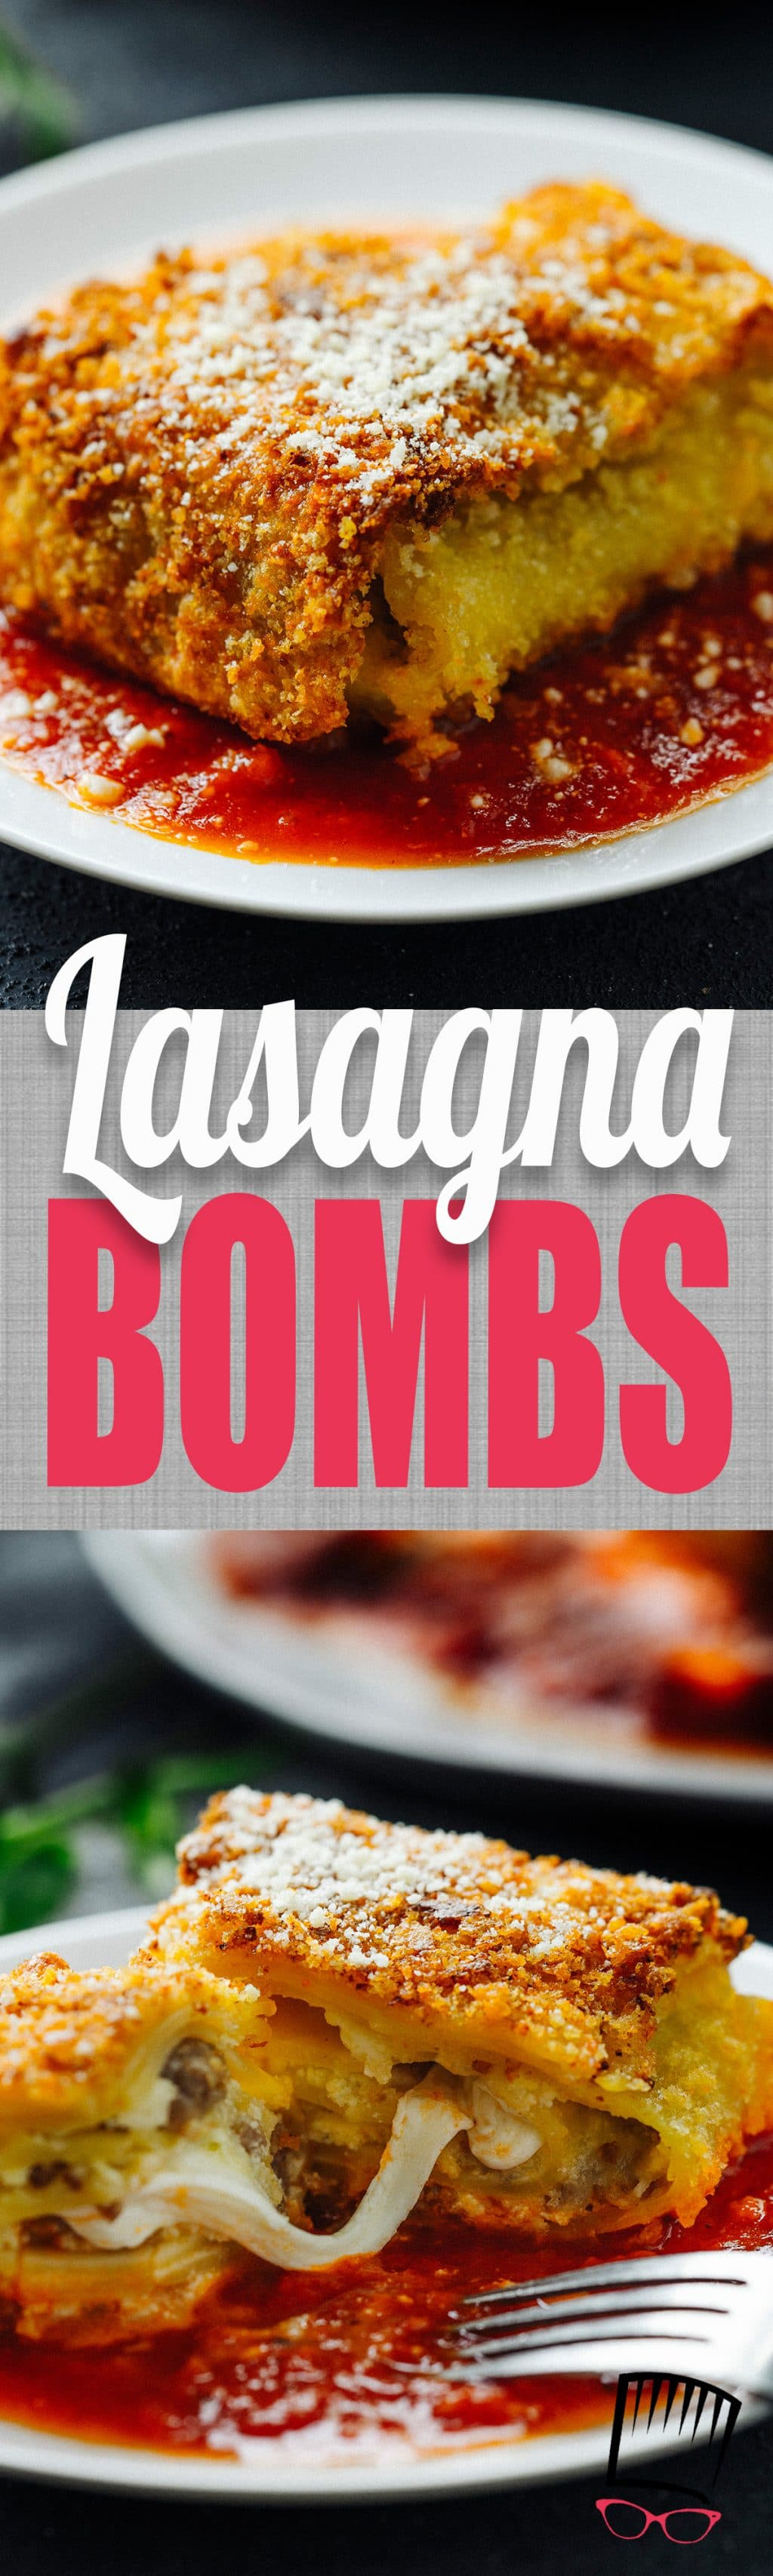 Looking for a new way to serve up lasagna? These Lasagna bombs have all that you love about lasagna wrapped up in a crispy-fried pasta-y shell. It's lasagna taken to a whole new level!